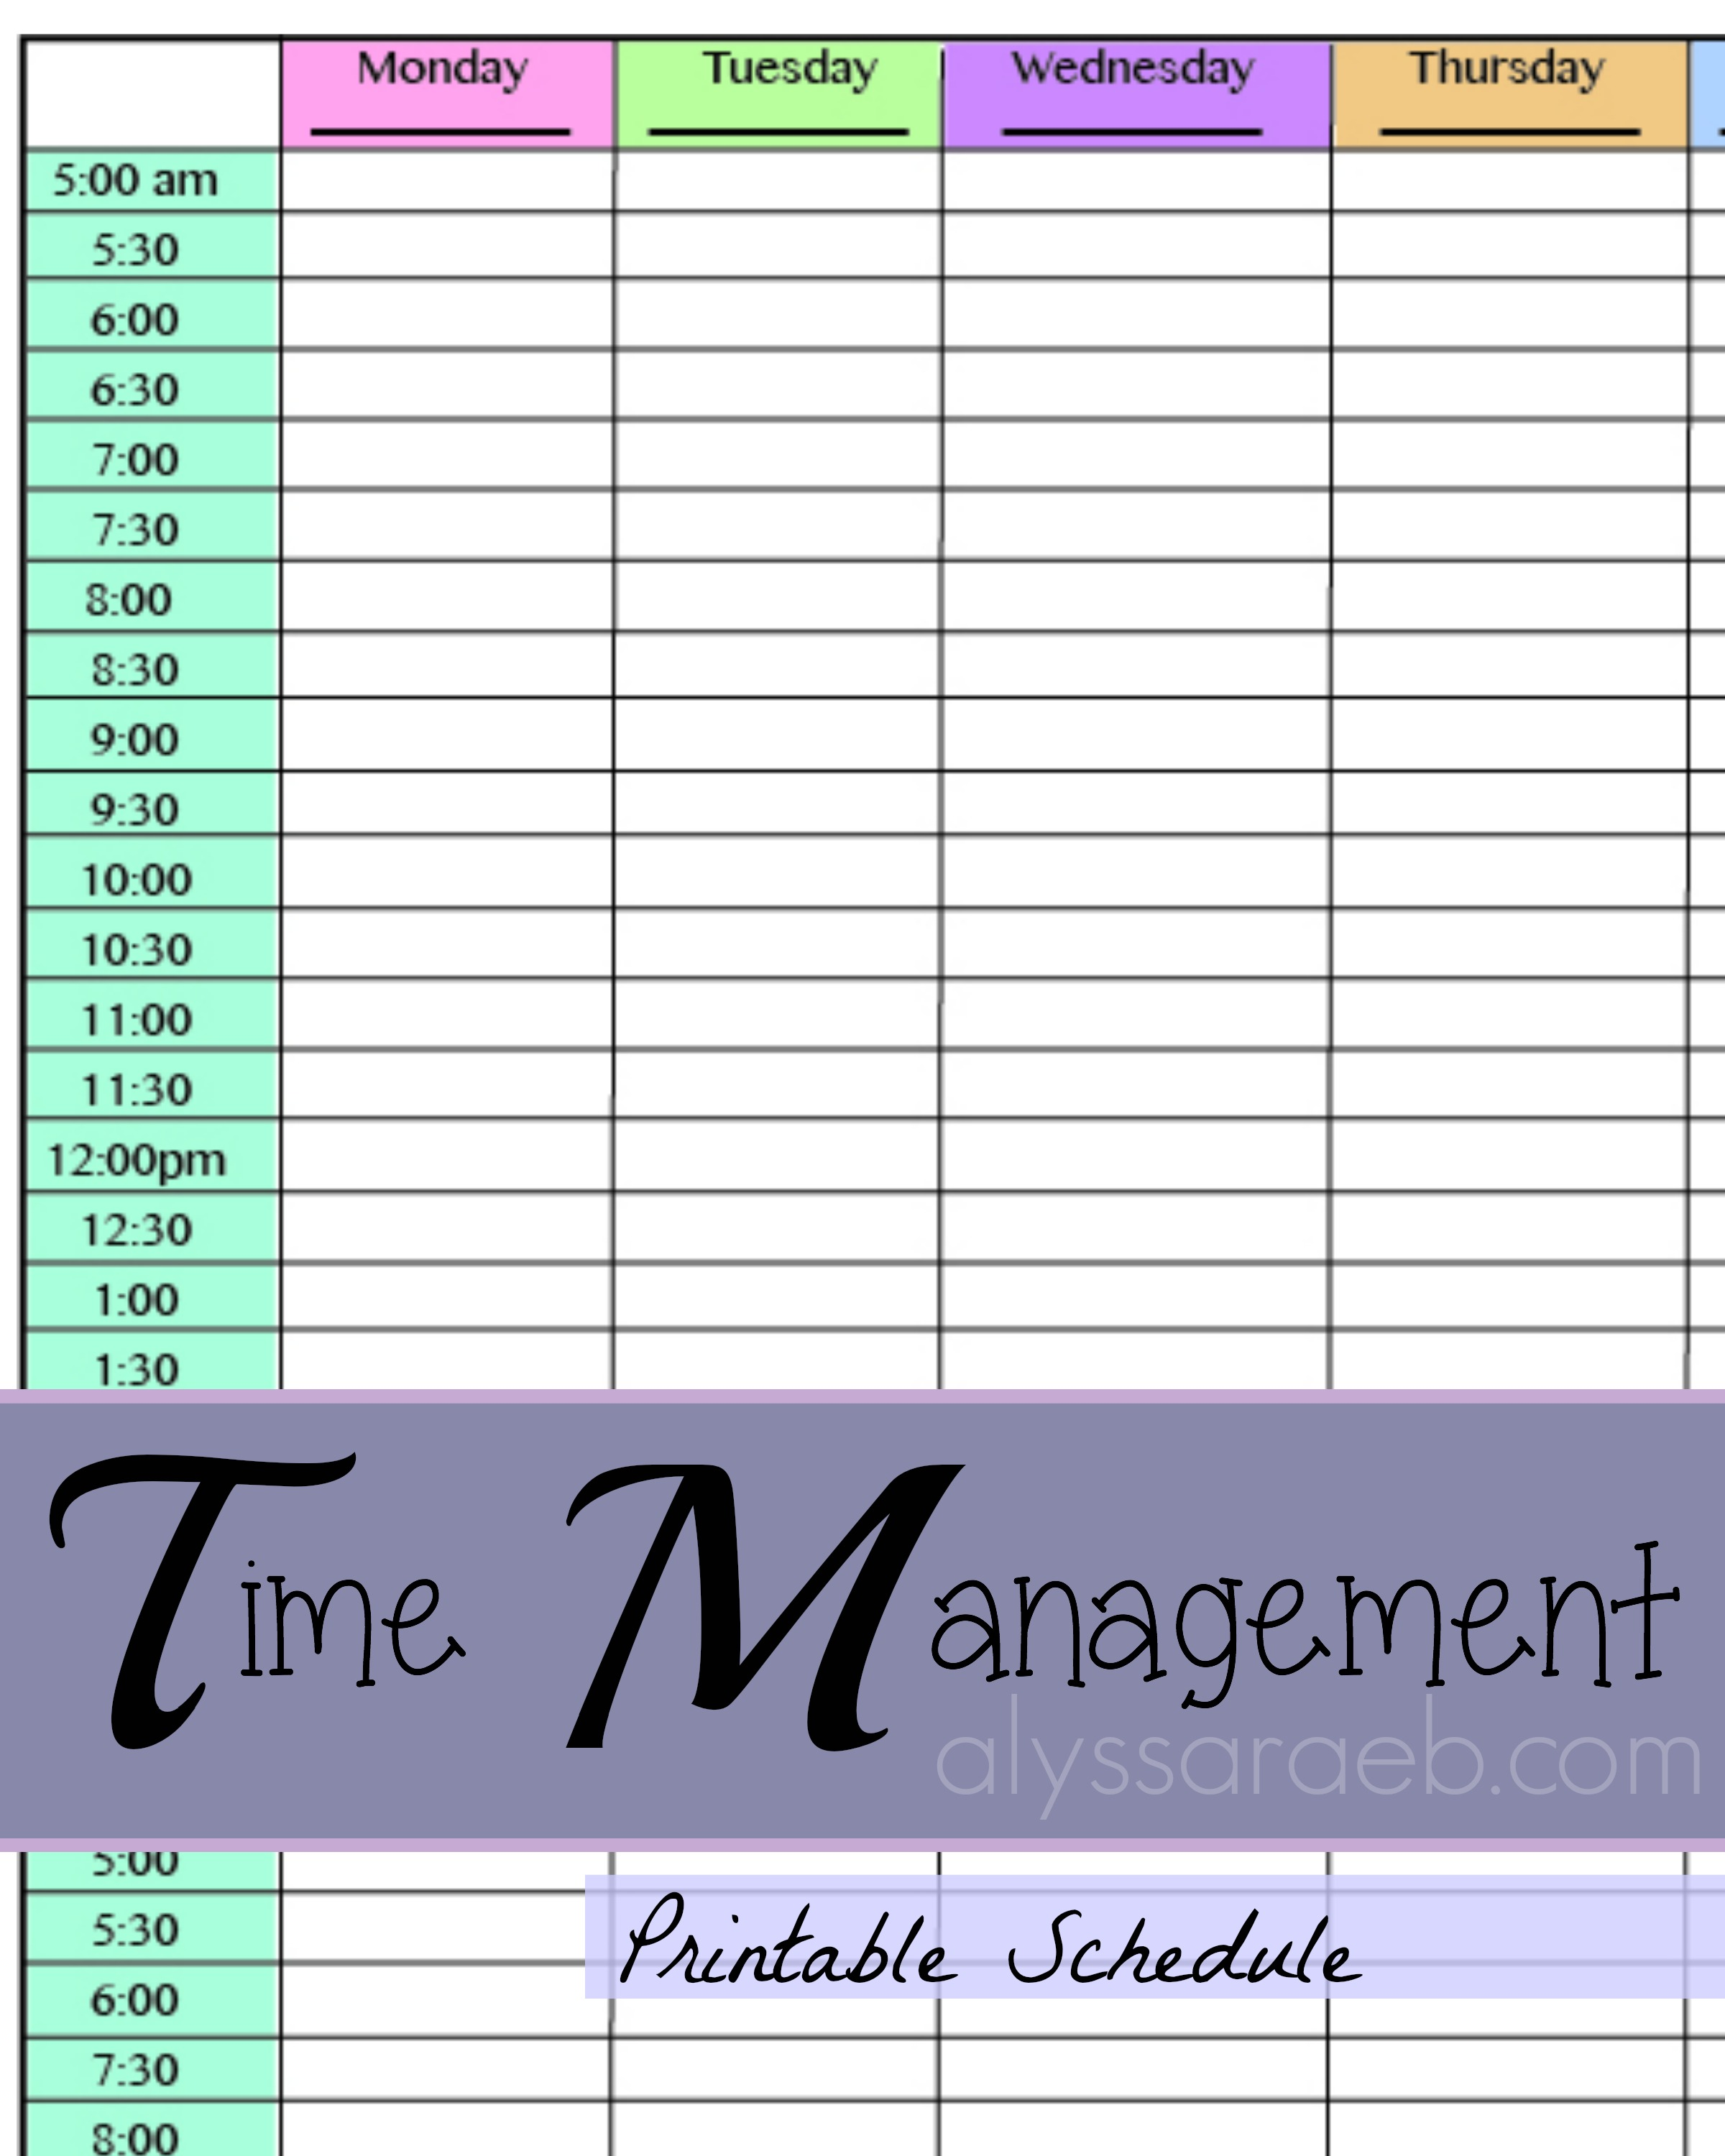 Time management alyssa rae for Time management to do list template